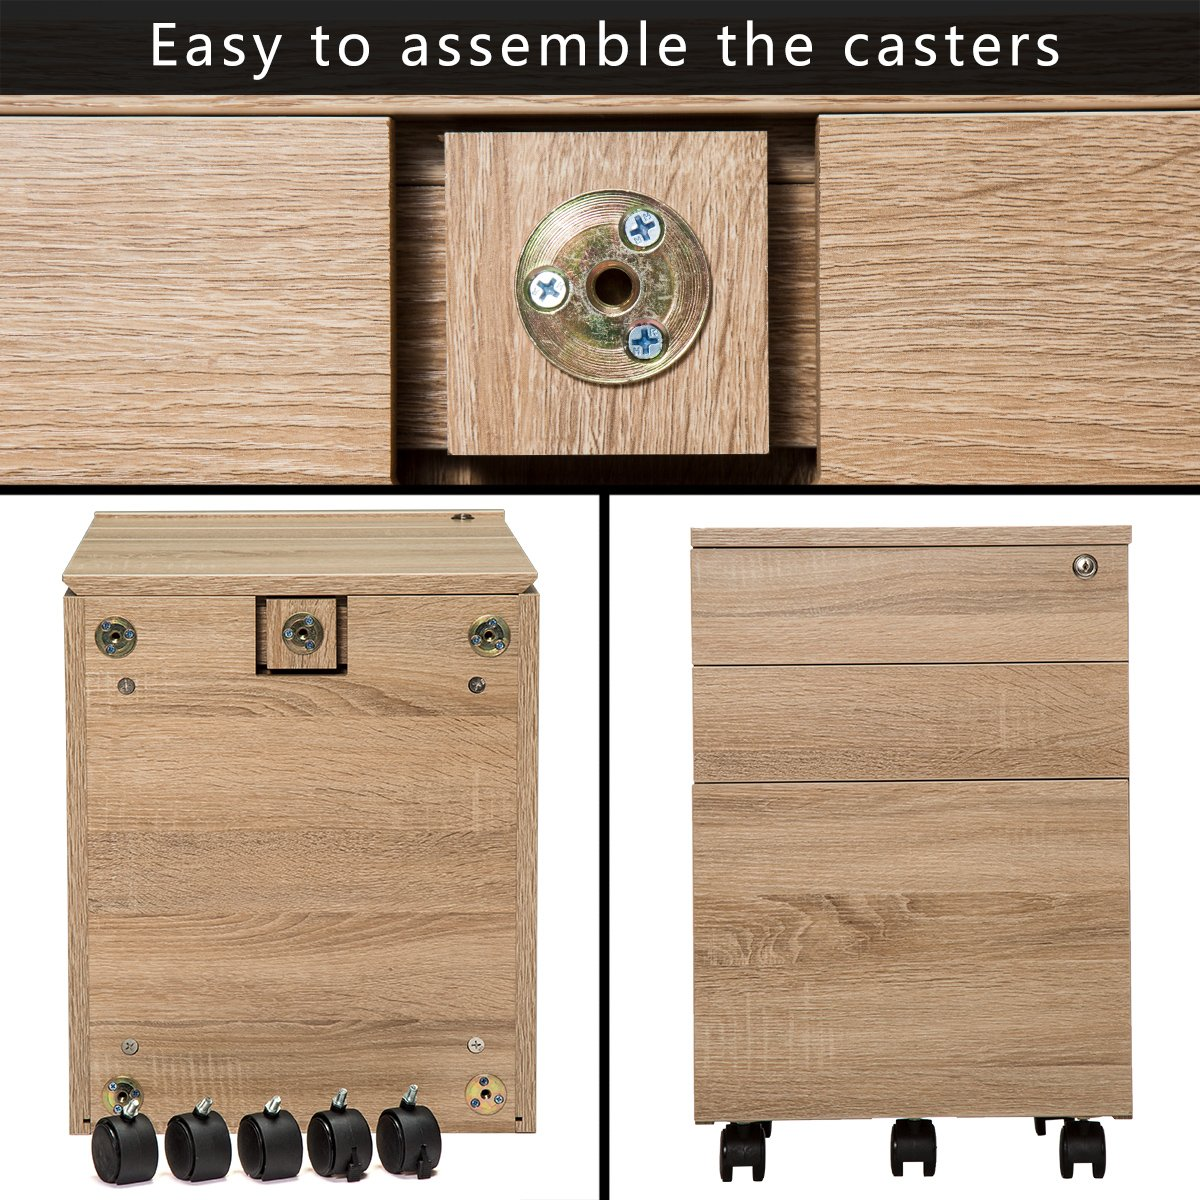 TOPSKY 3 Drawers Wood Mobile File Cabinet Fully Assembled Except Casters (Oak Letter Size) by TOPSKY (Image #4)